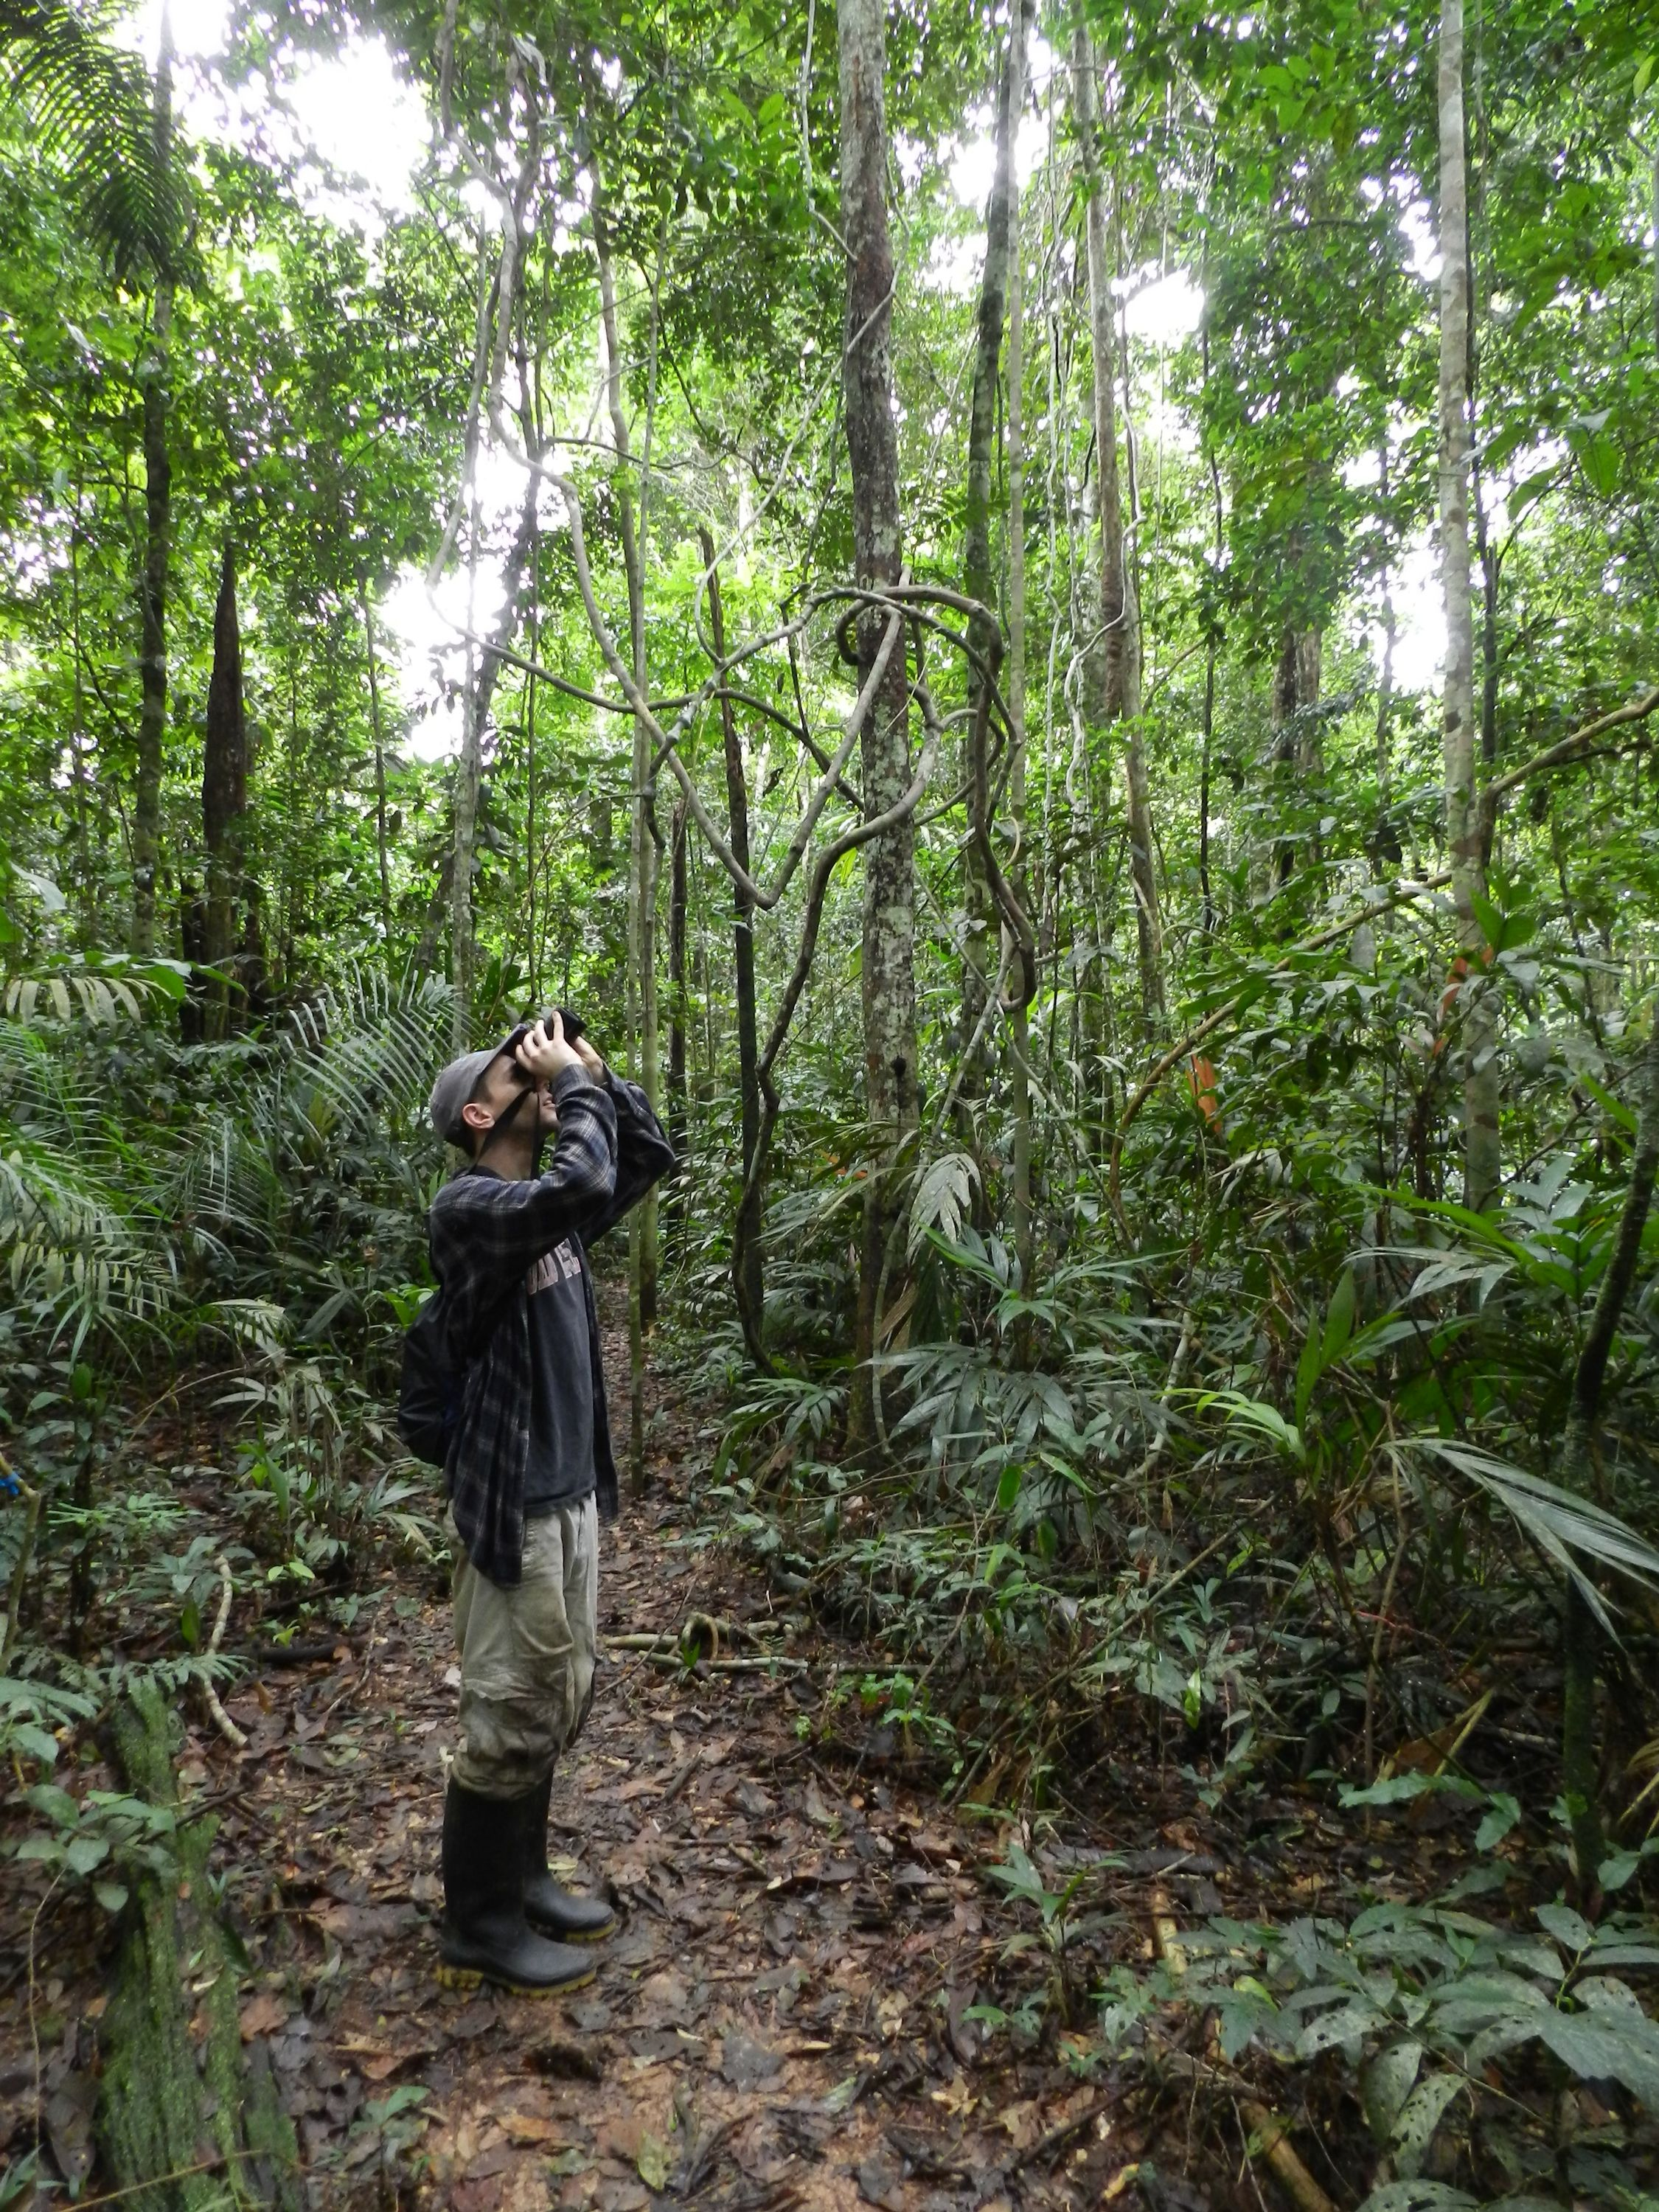 Sean scanning the rain forest canopy from the ground, Madre de Dios, Peru